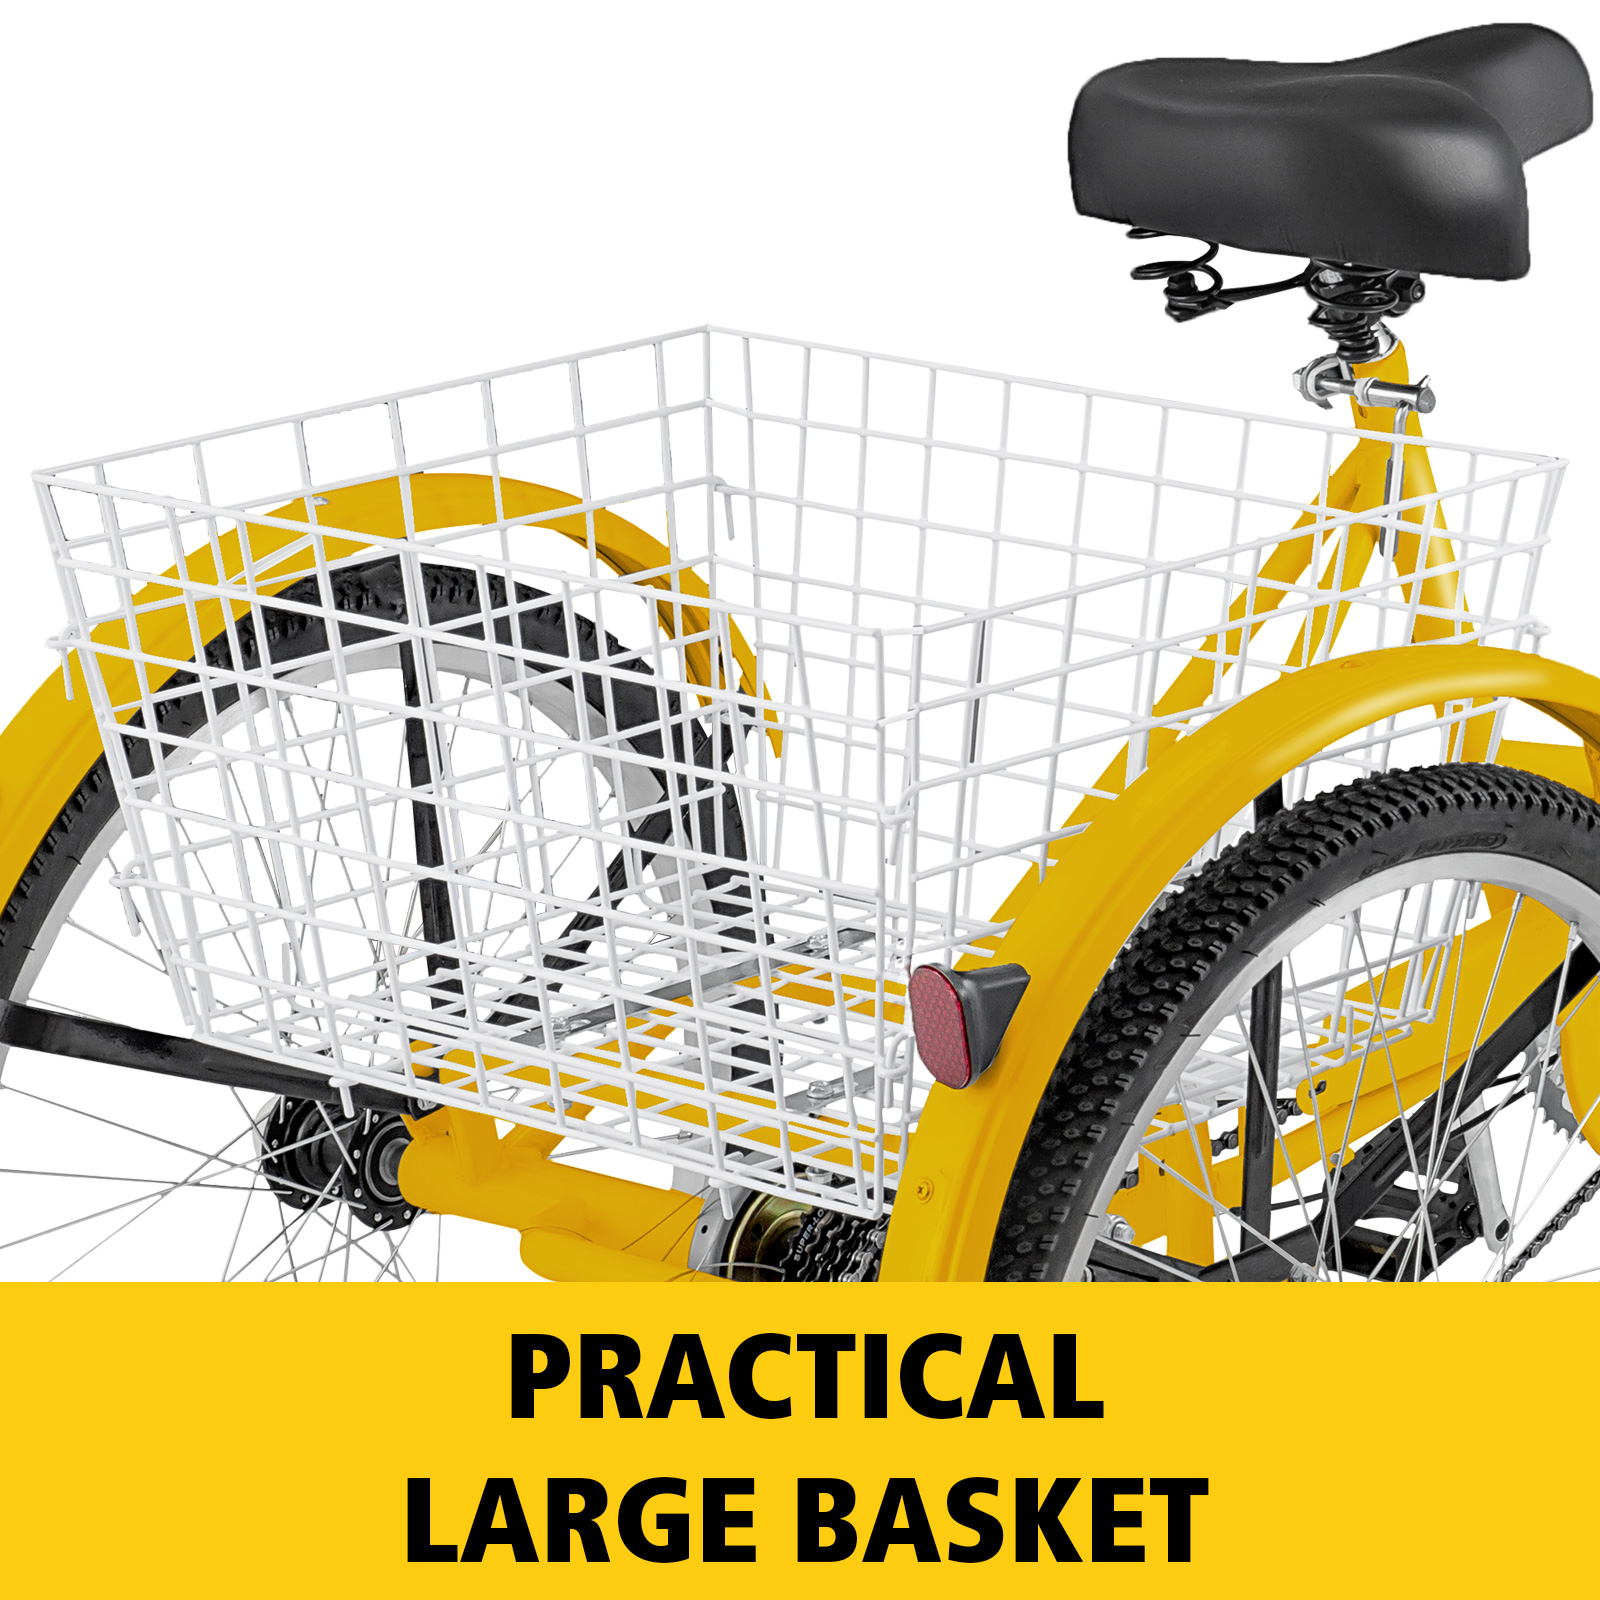 20-24-26-034-Adult-Tricycle-1-7-Speed-3-Wheel-Large-Basket-For-Shopping-Optional thumbnail 175